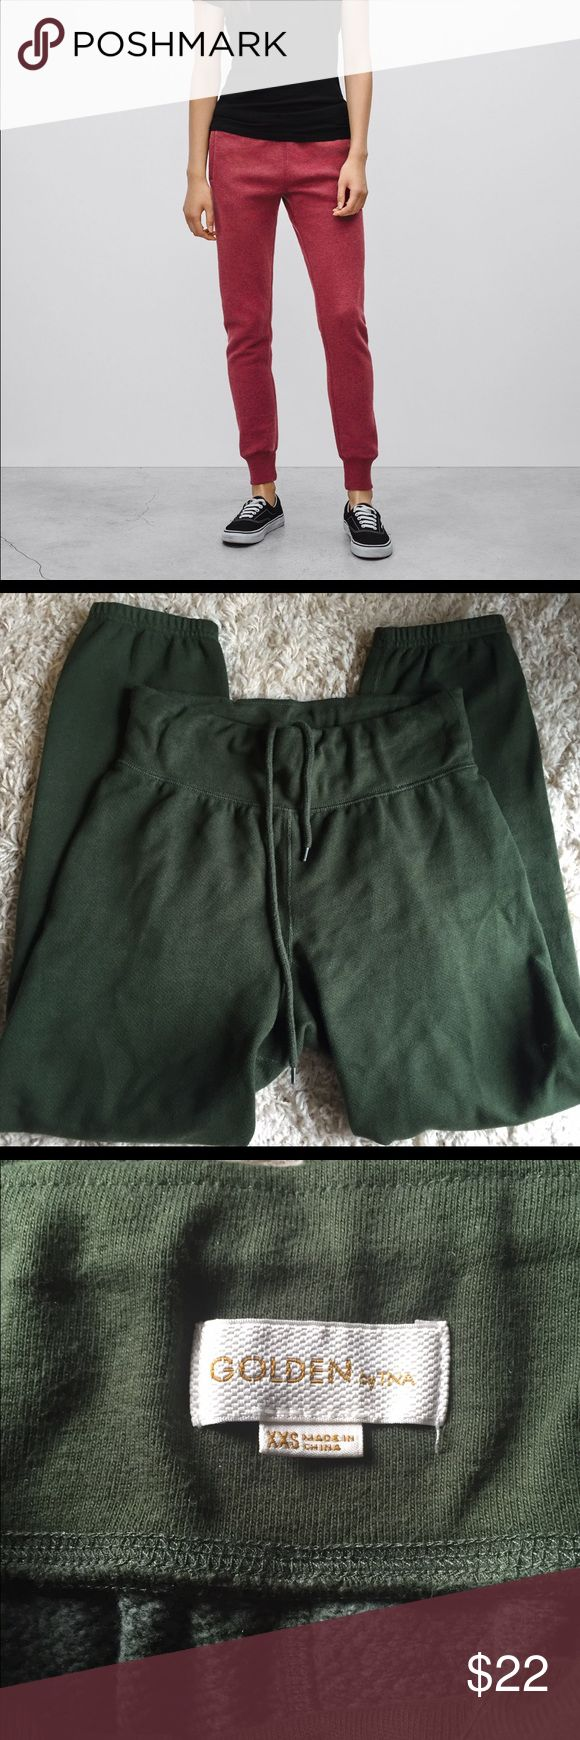 Aritzia Golden by TNA green fleece joggers xxs Aritzia green joggers by Golden and TNA. Size xxs does have stretch, inner drawstring for the perfect fit. Worn once then hand washed. Aritzia Pants Track Pants & Joggers